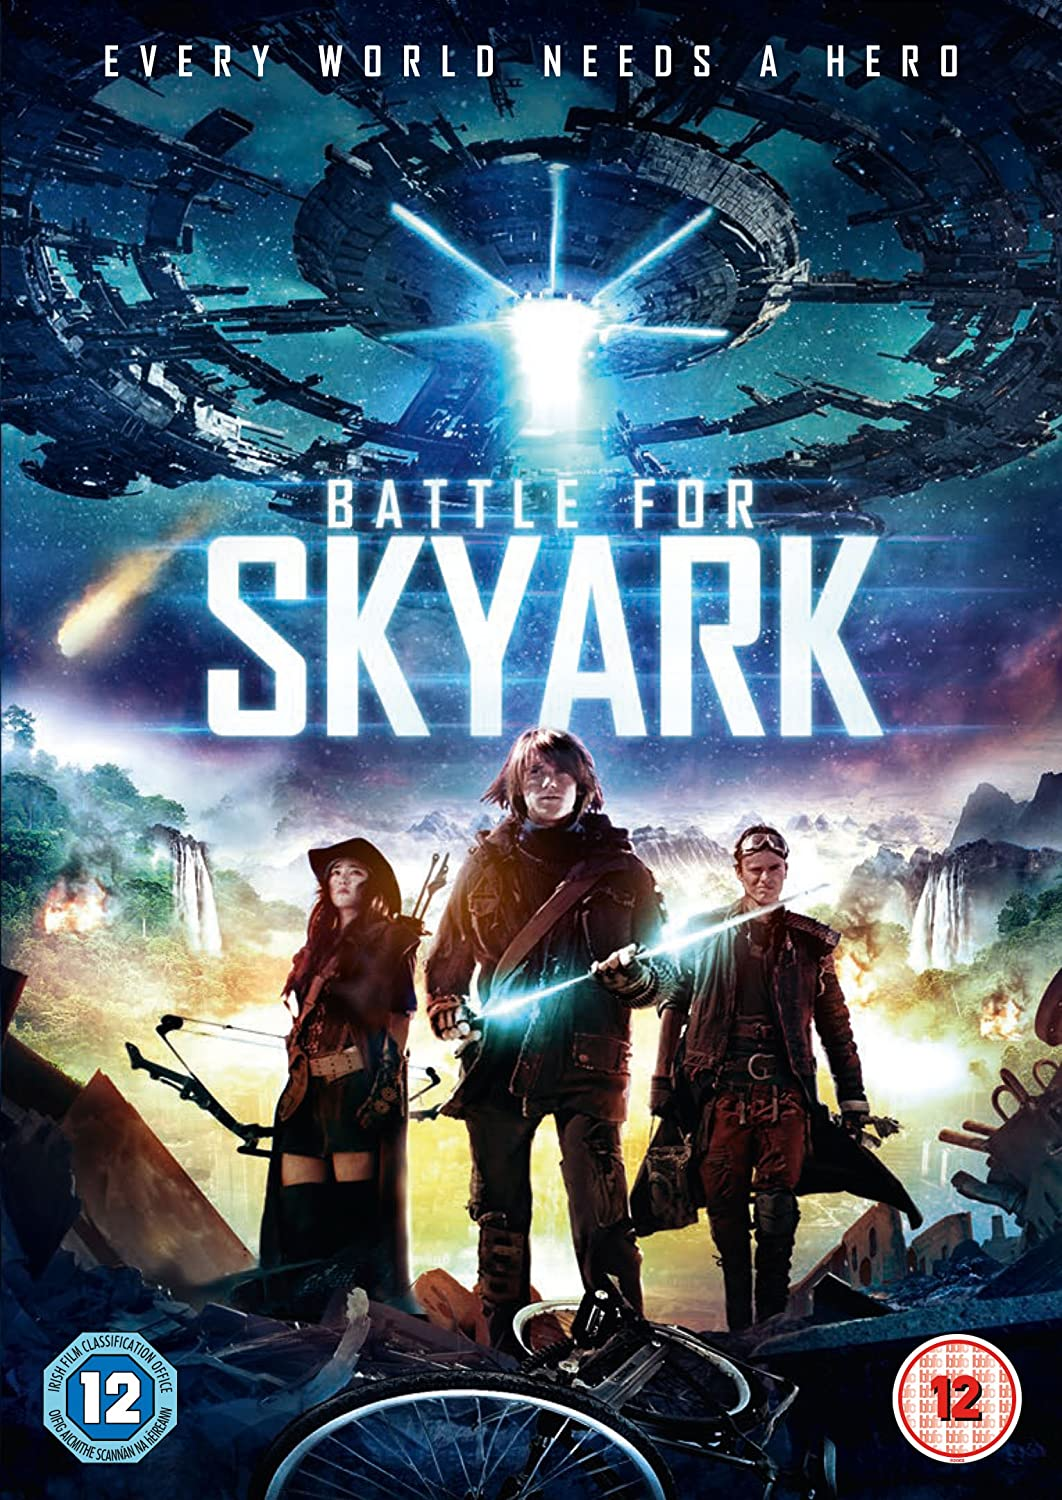 Battle for Skyark affiche